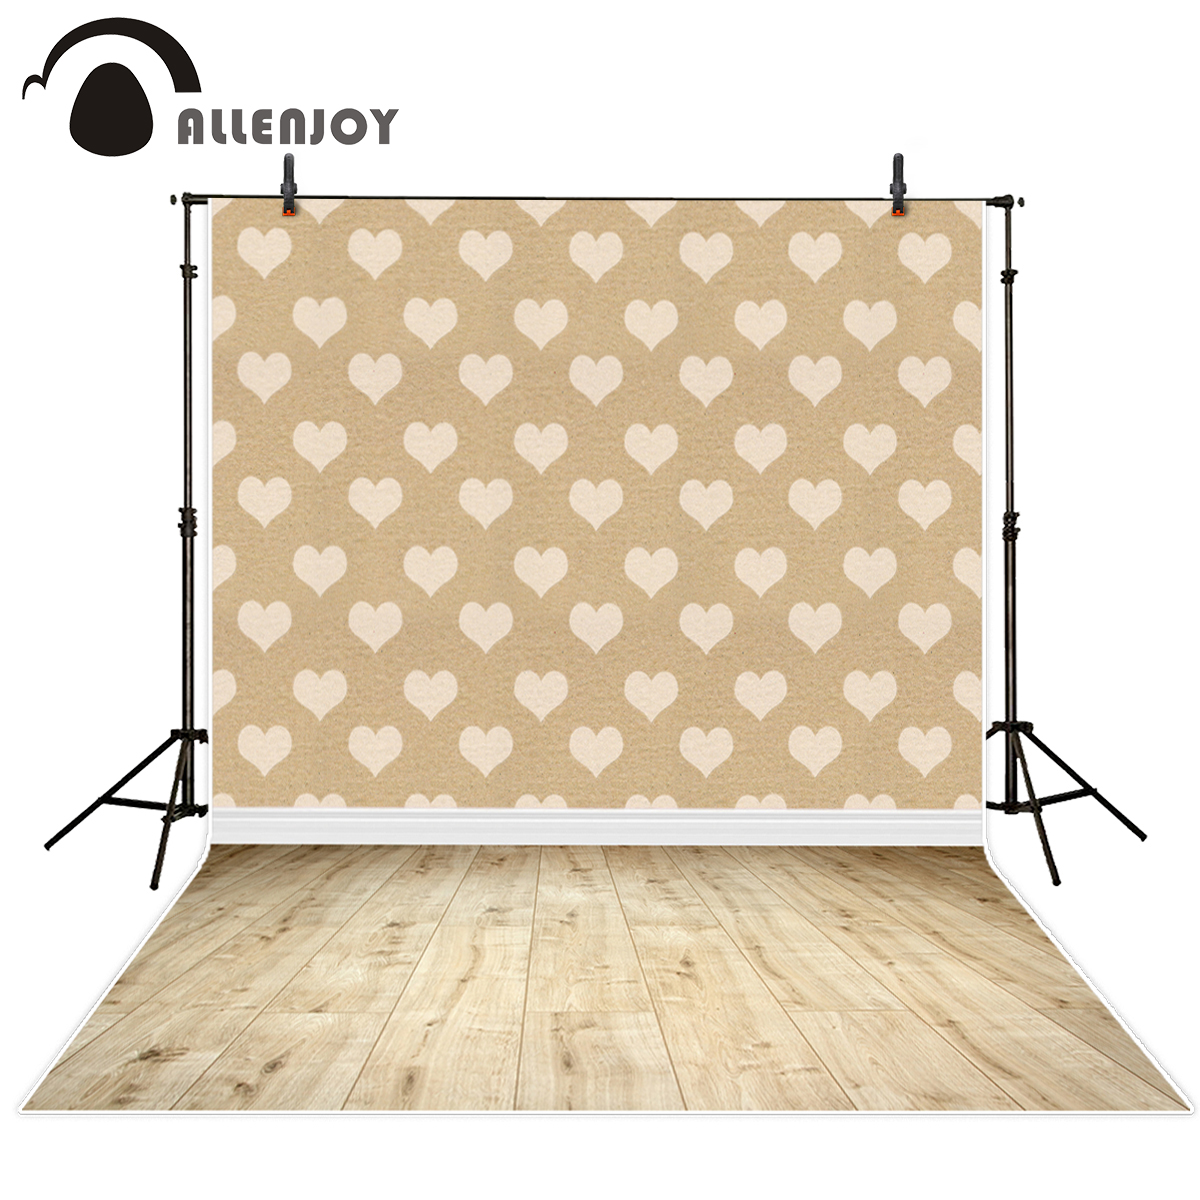 Allenjoy Vinyl cloth Photography Backdrops Valentine Gifts heart pattern brick wall Newborn lover Background for photo Studio valentine heart ballon pattern love confession gifts night light